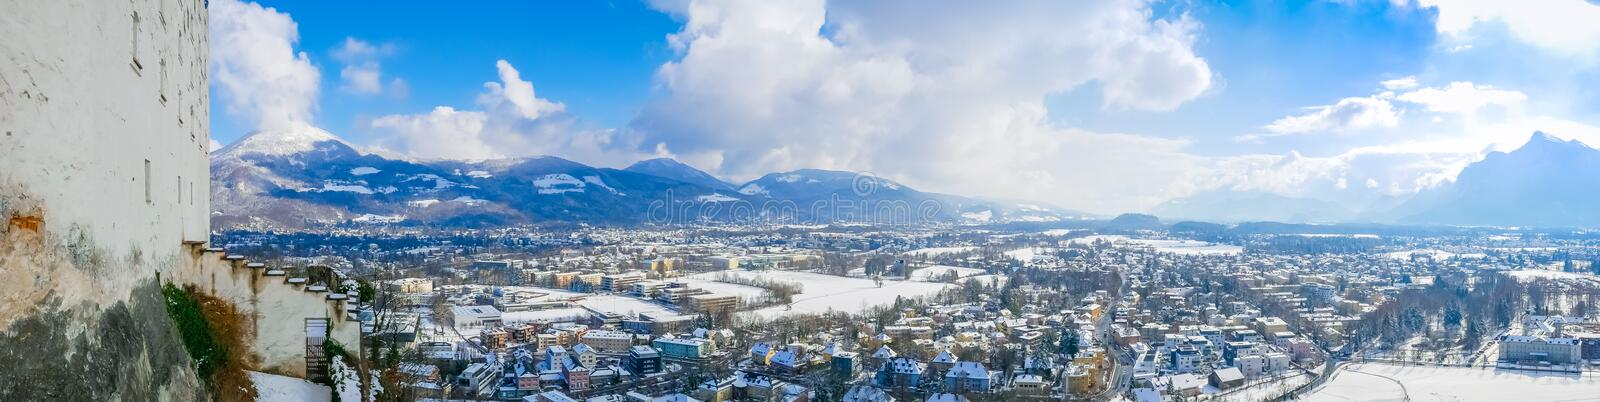 Panorama landscape view salzburg austria moutain blue sky city royalty free stock photos